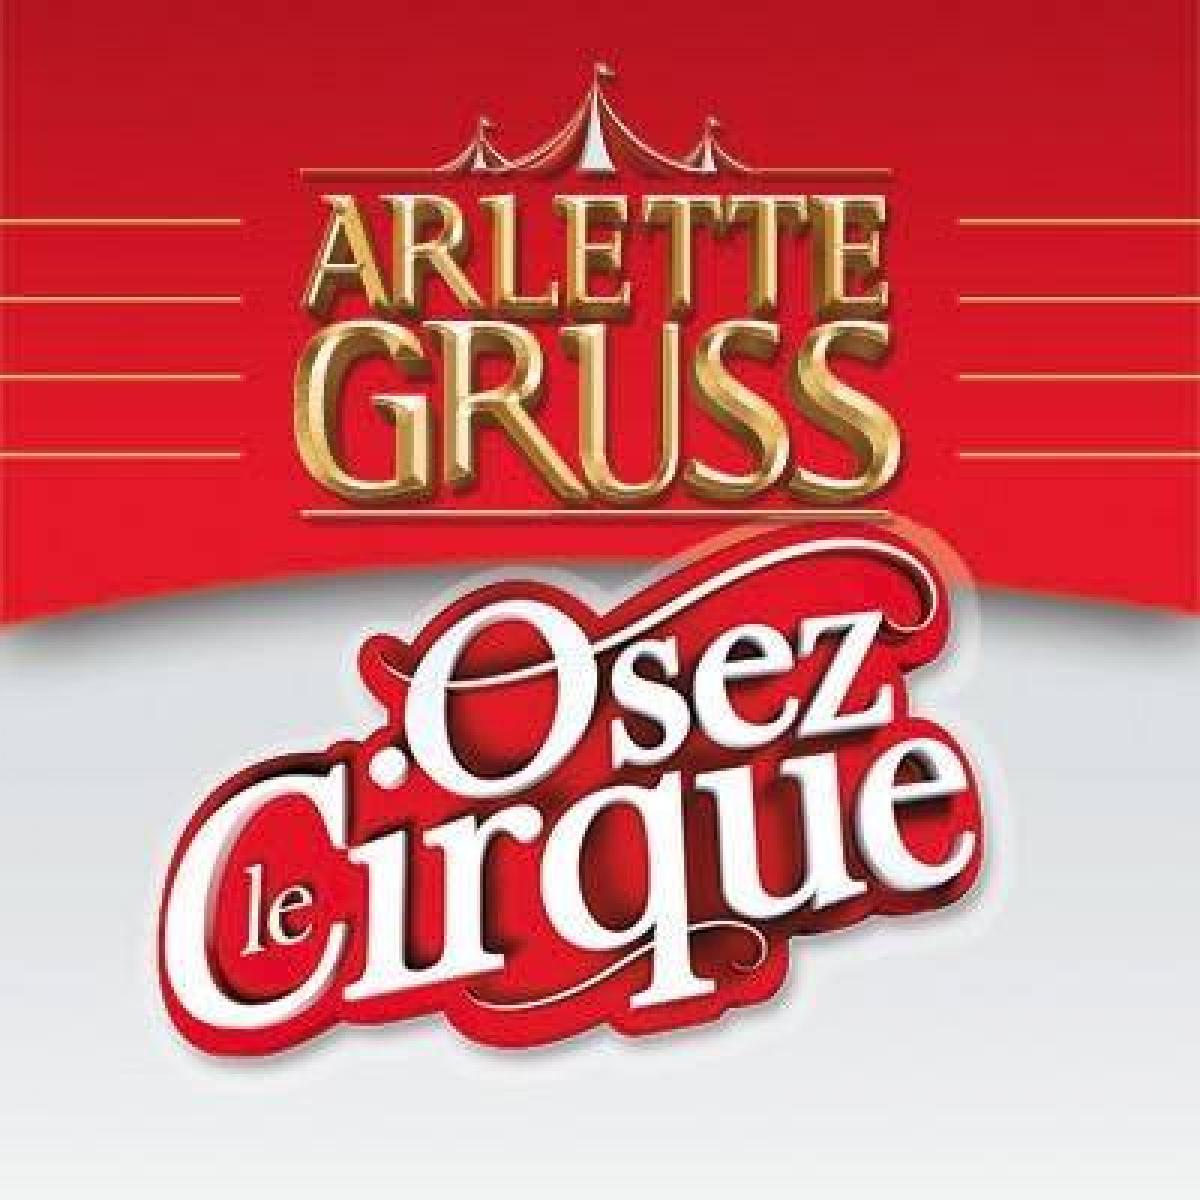 """OSEZ LE CIRQUE"" - Circus Events - CircusTalk"